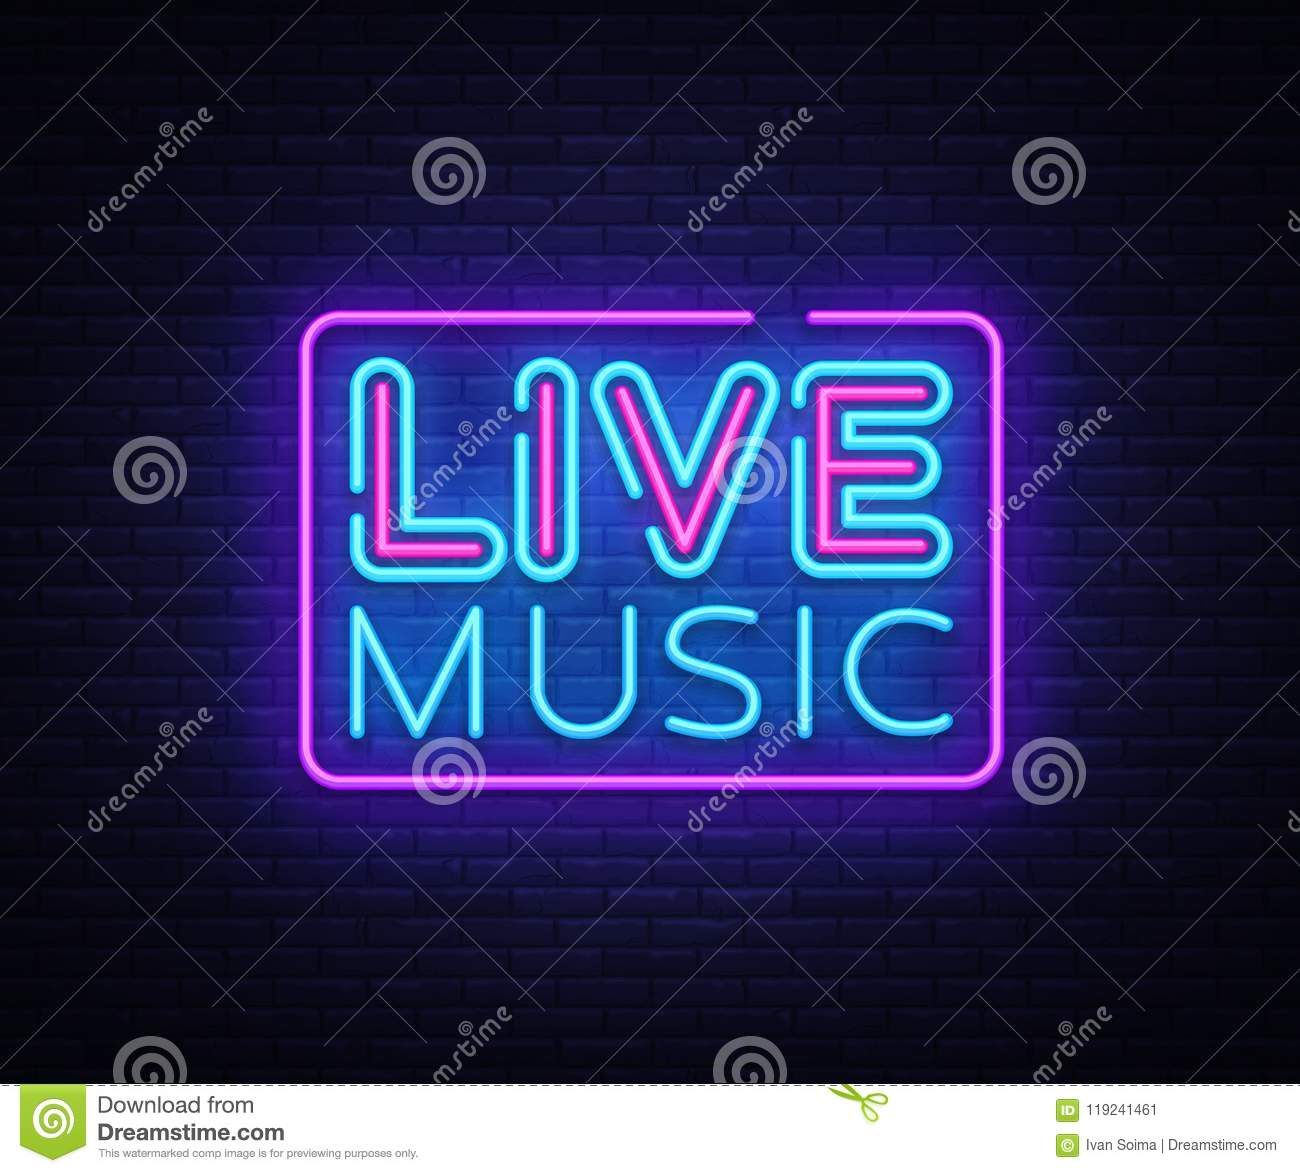 Live Music neon sign vector. Live Music design template neon sign, light banner, neon signboard, nightly bright